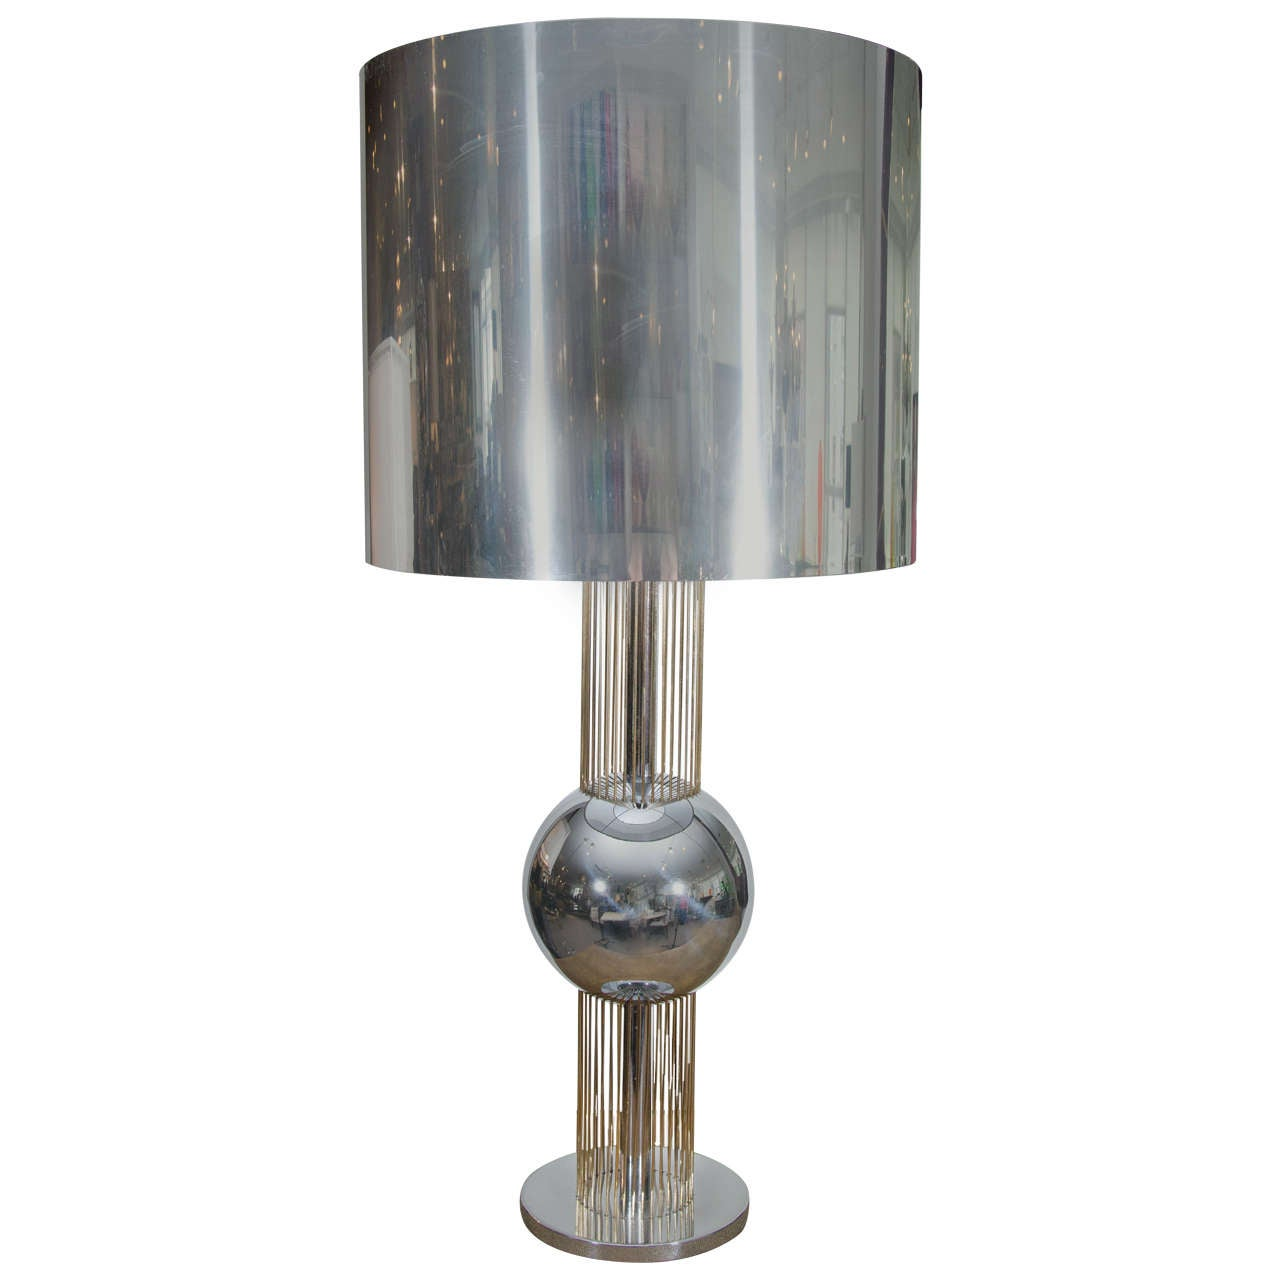 Metal Filament Table Lamp For Sale At 1stdibs